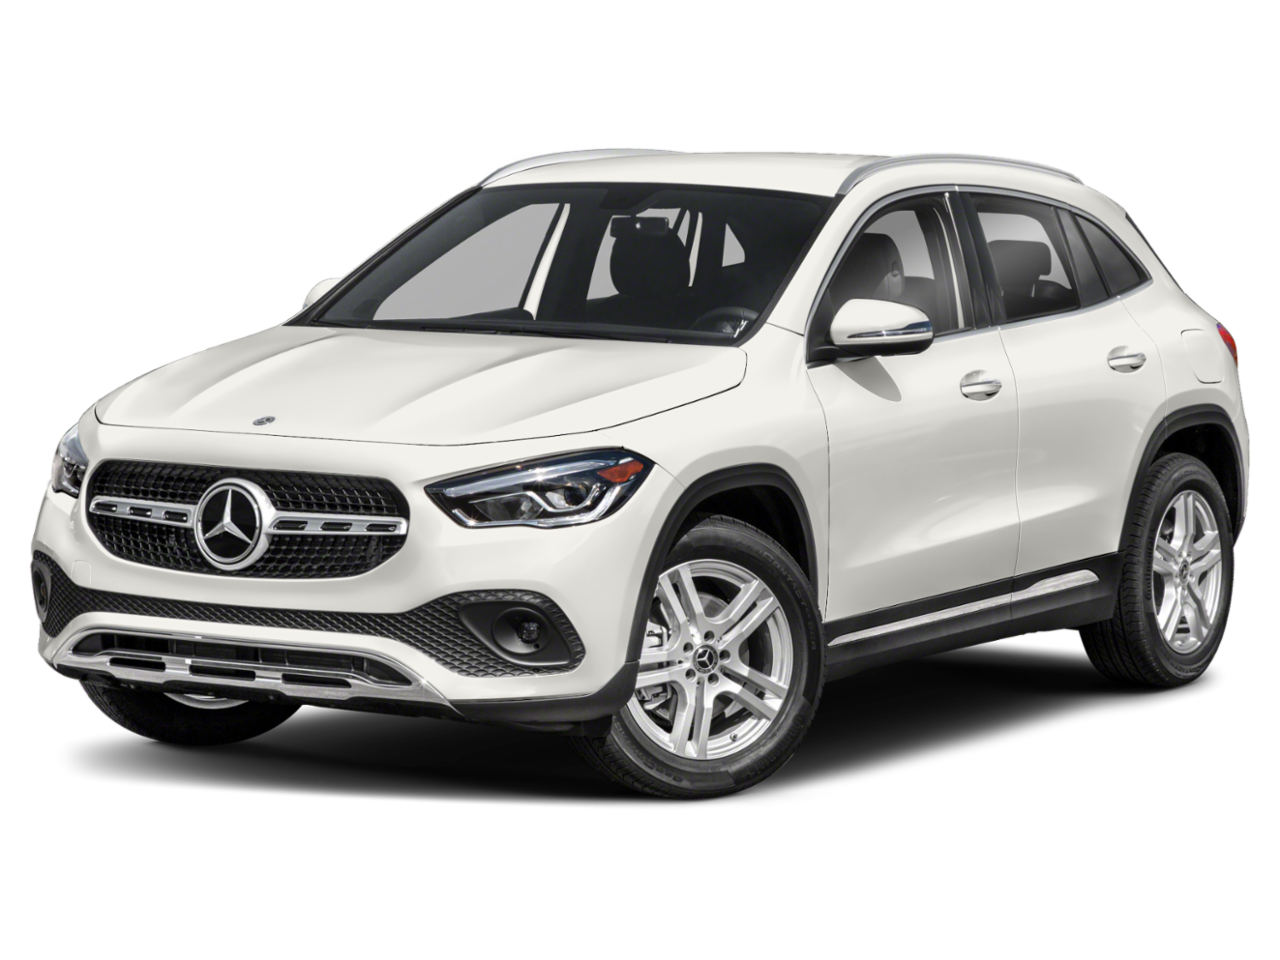 Buyer's Guide: 2021 Mercedes-Benz GLA